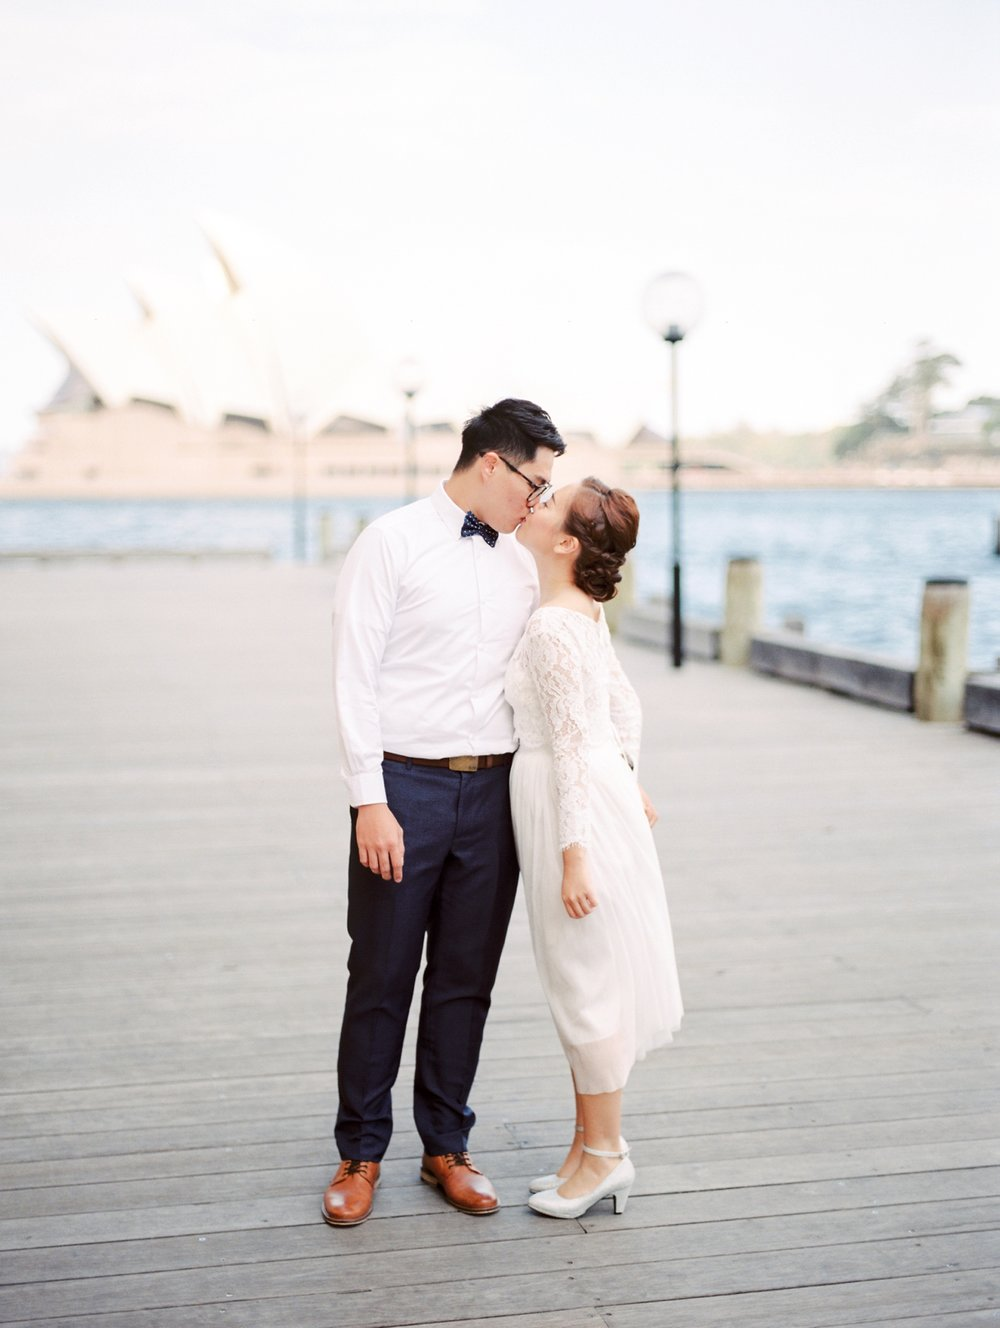 Sydney WEdding Photographer Mr Edwards engagement Session_2192.jpg